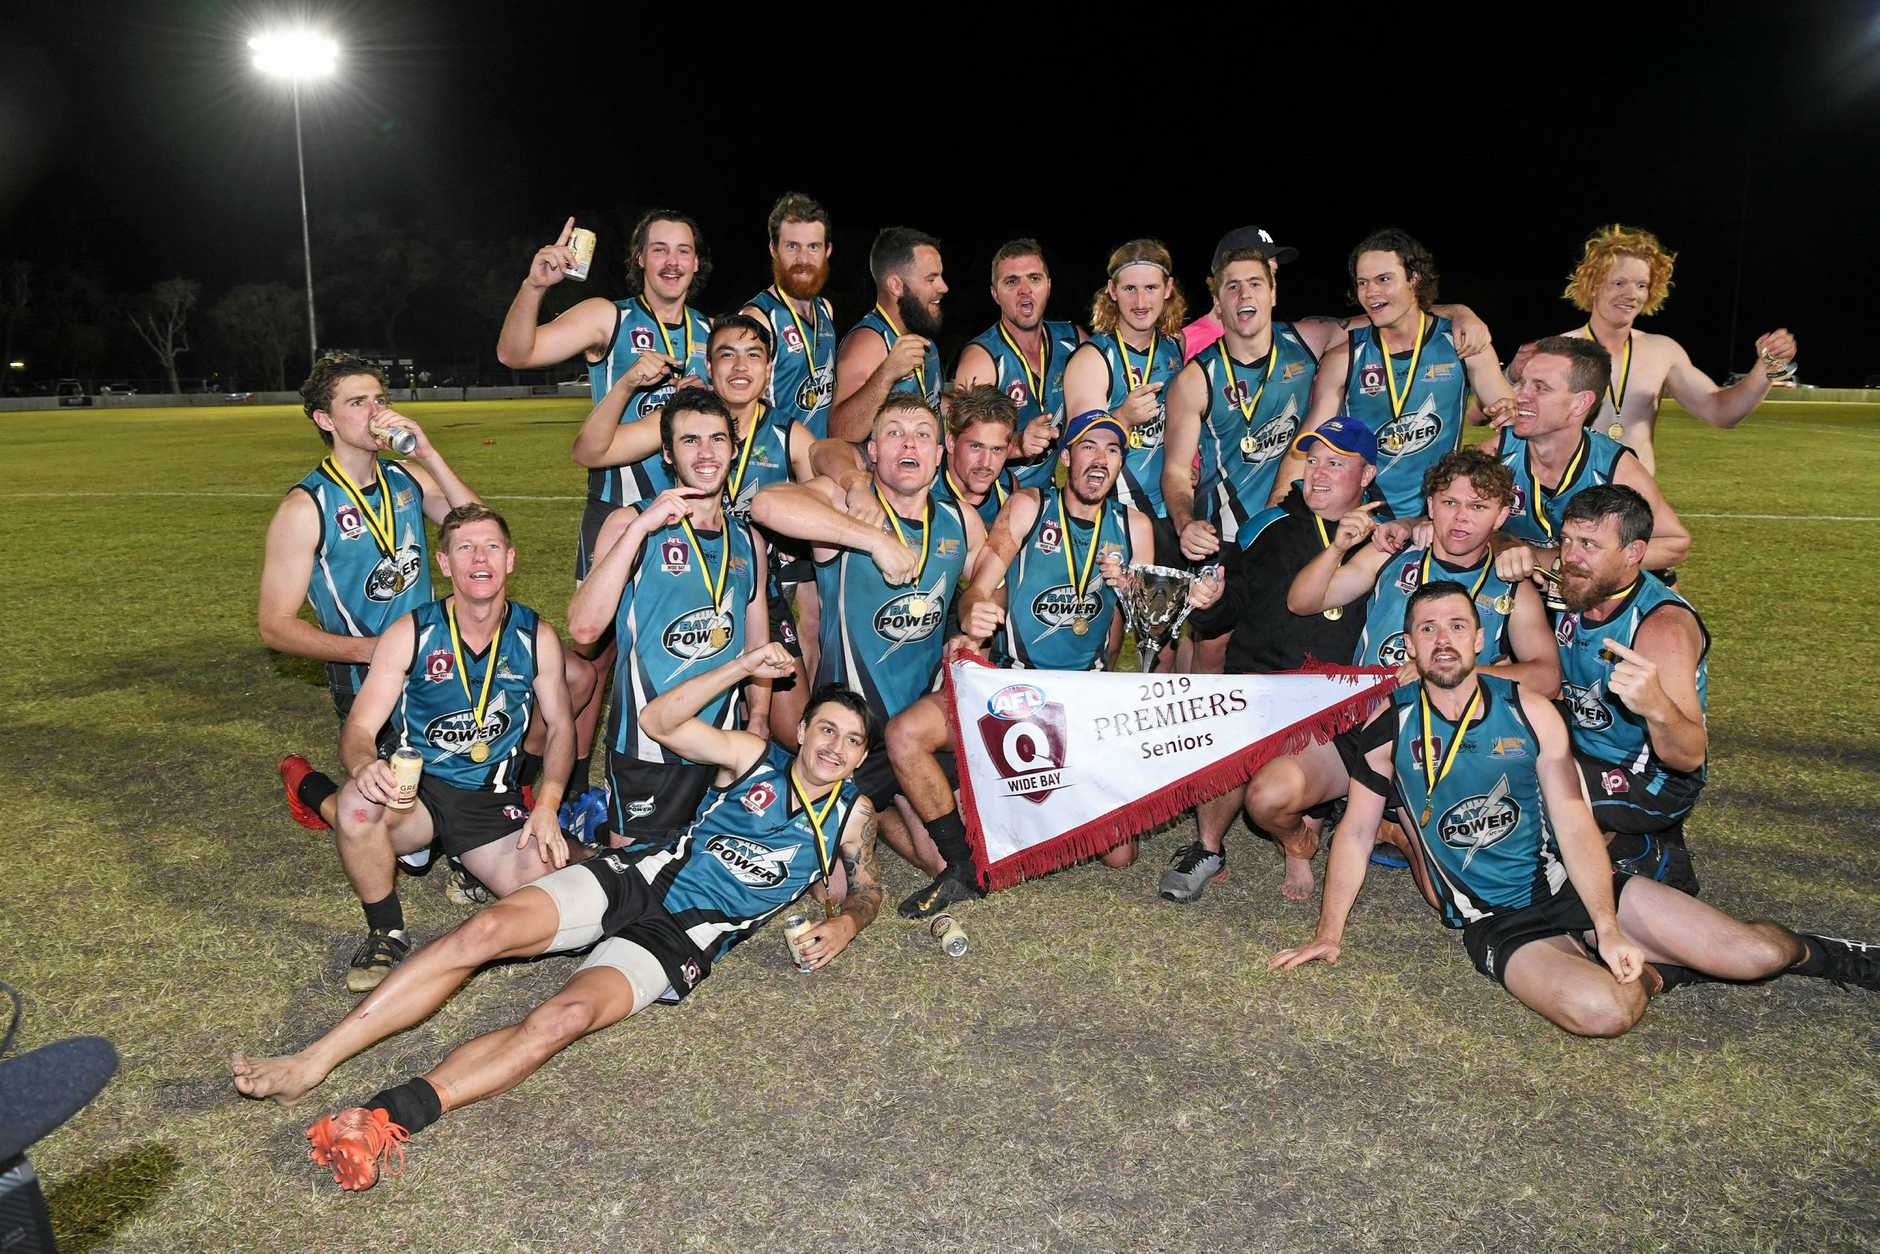 PREMIERS: Bay Power celebrates their historic premiership win over the Hervey Bay Bombers on Saturday night.